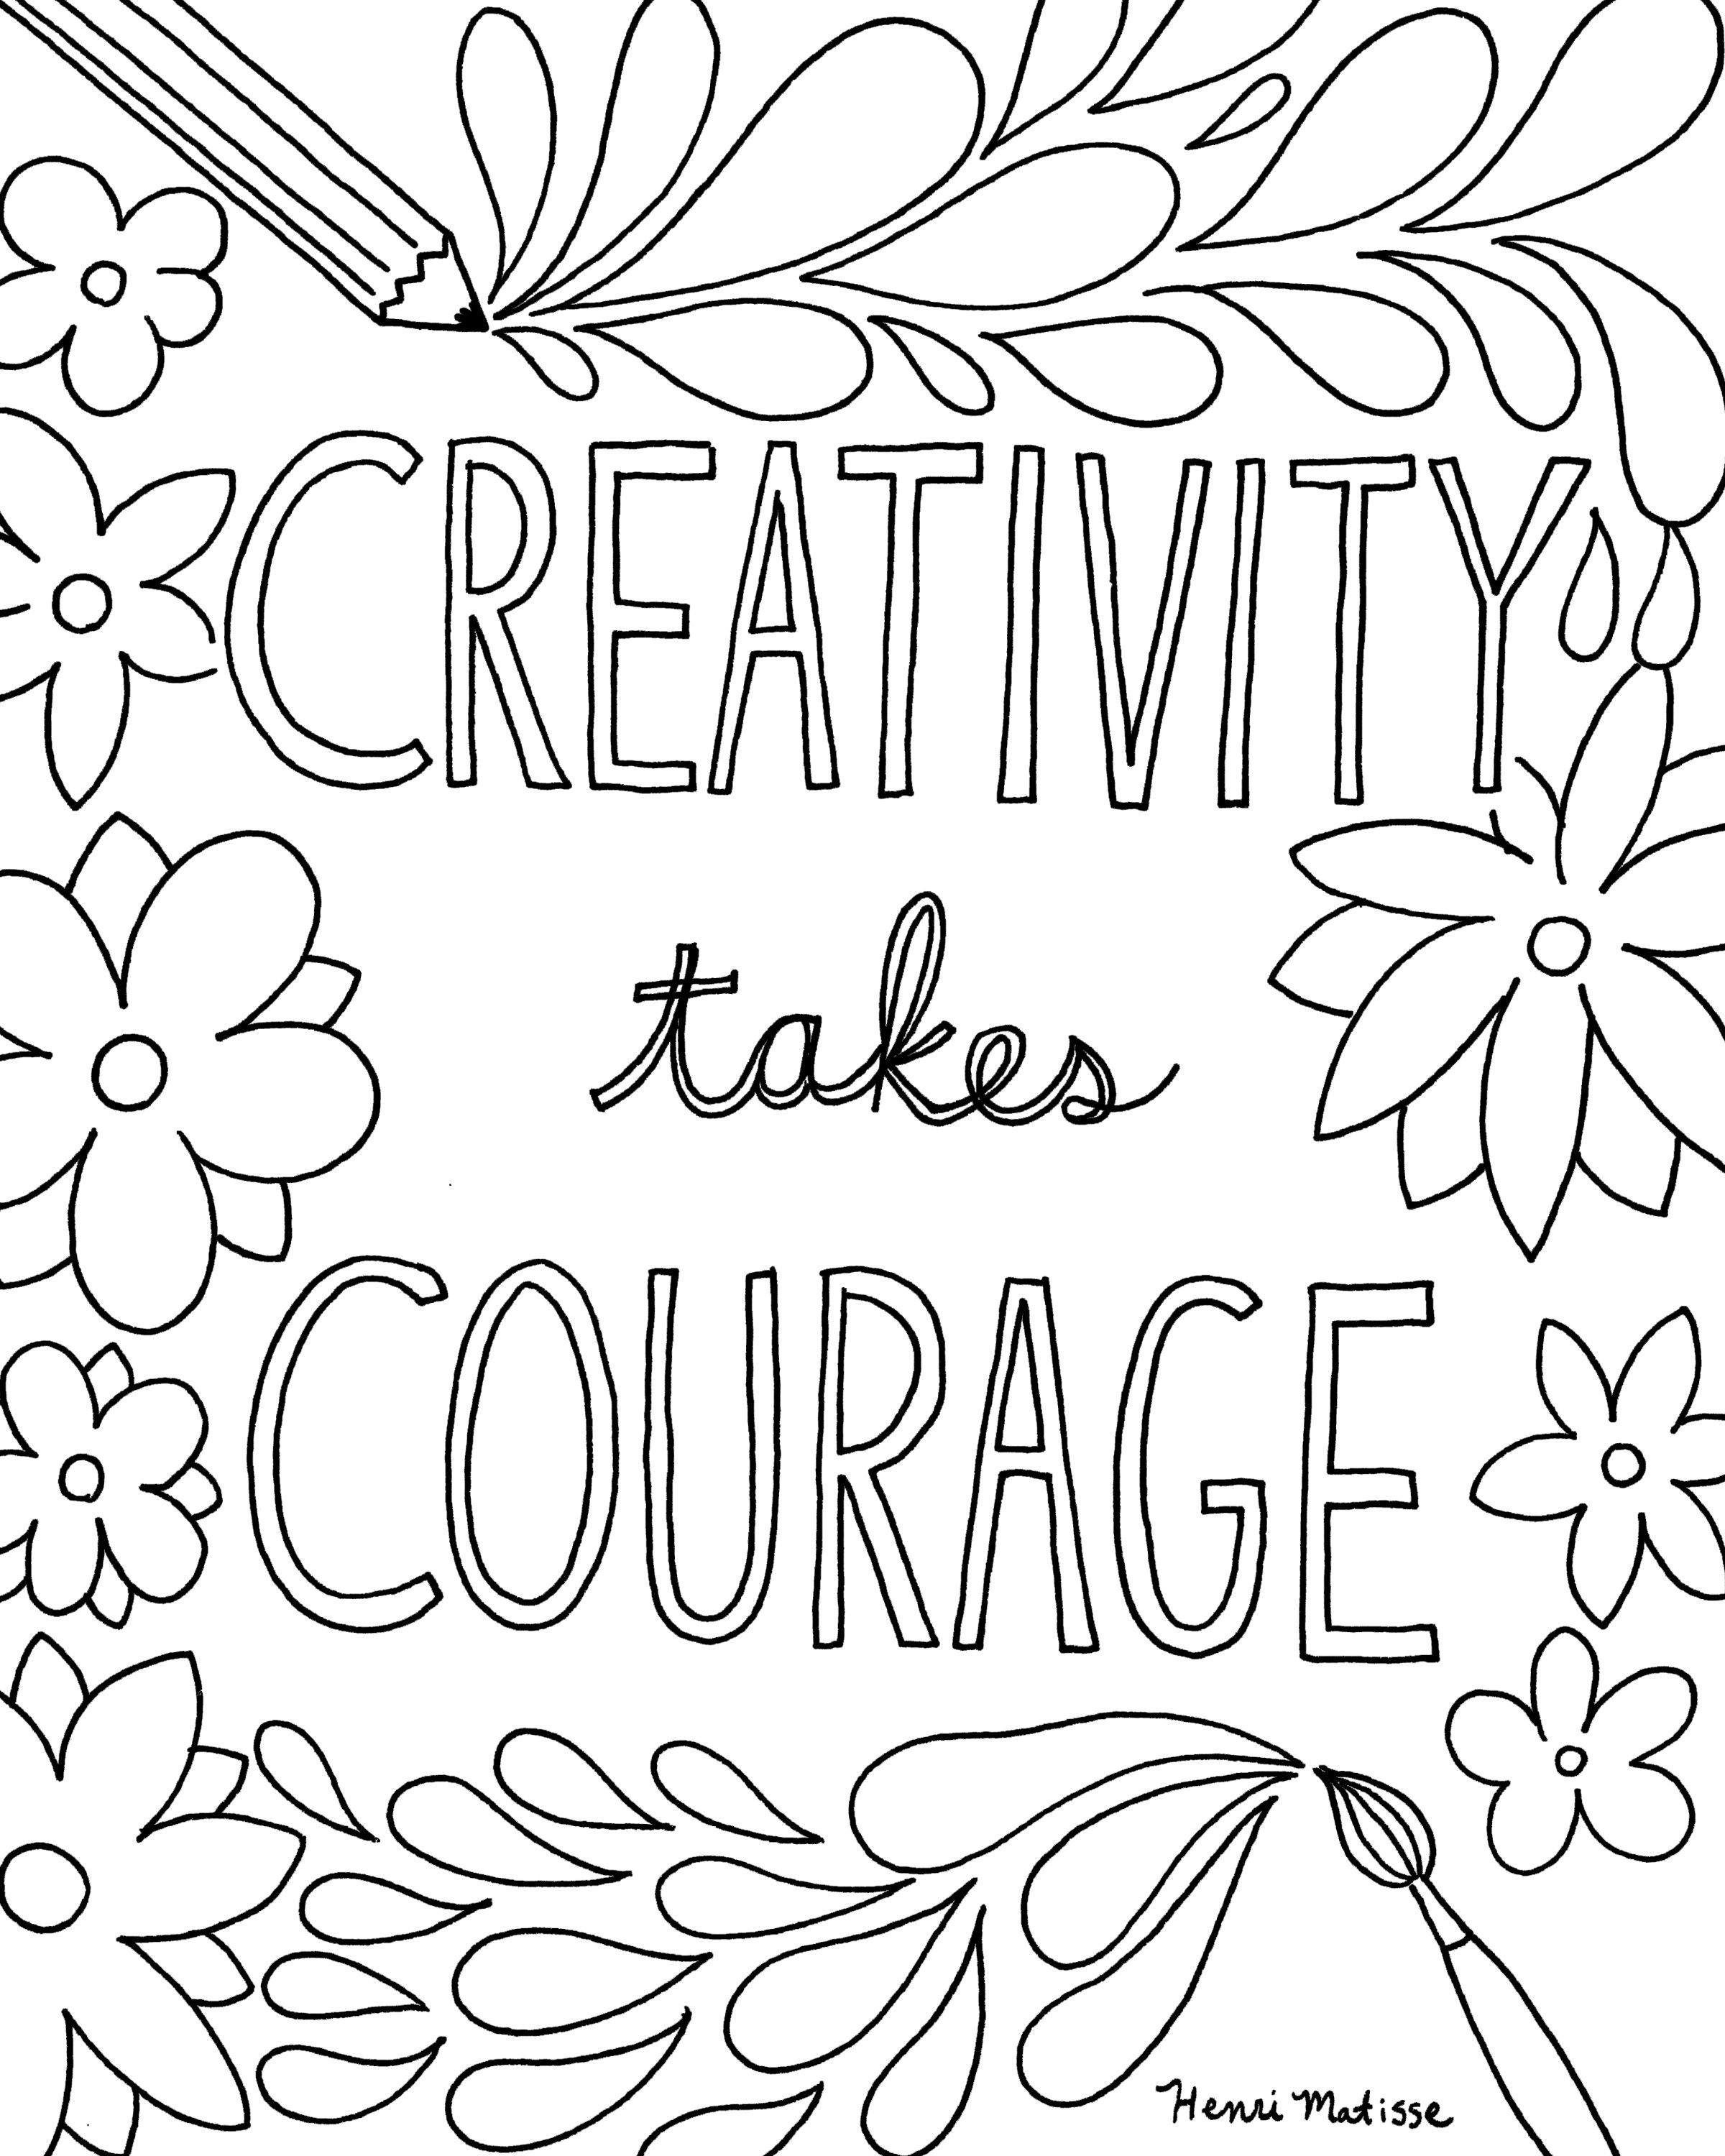 Free Printable Quote Coloring Pages For Grown-Ups | Drawing And - Www Free Printable Coloring Pages